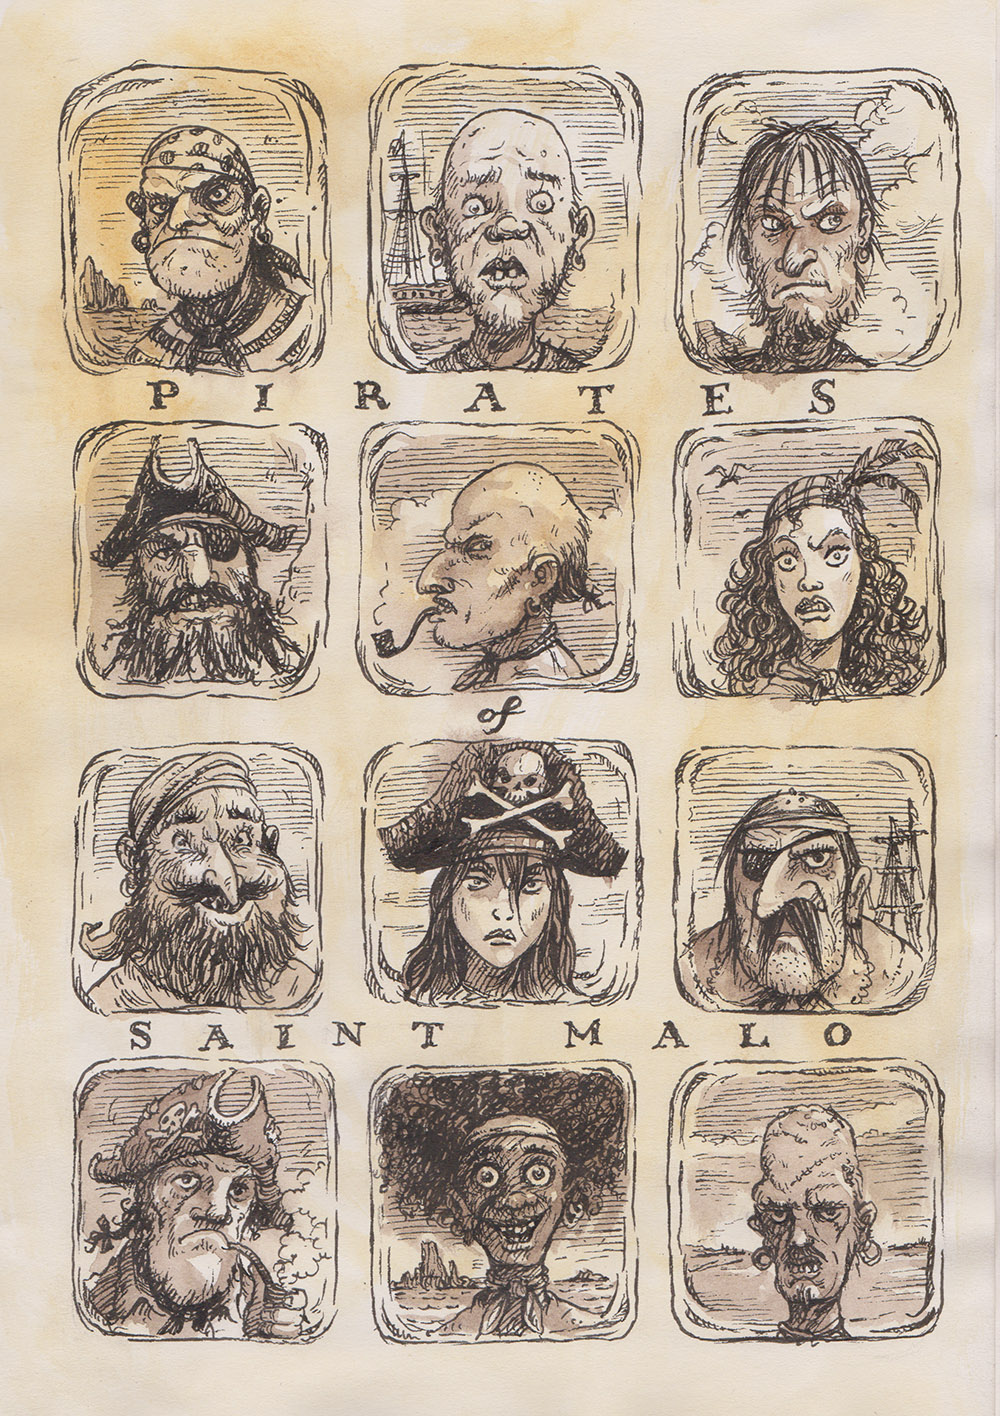 Pirates of St. Malo - Leo Hartas illustration